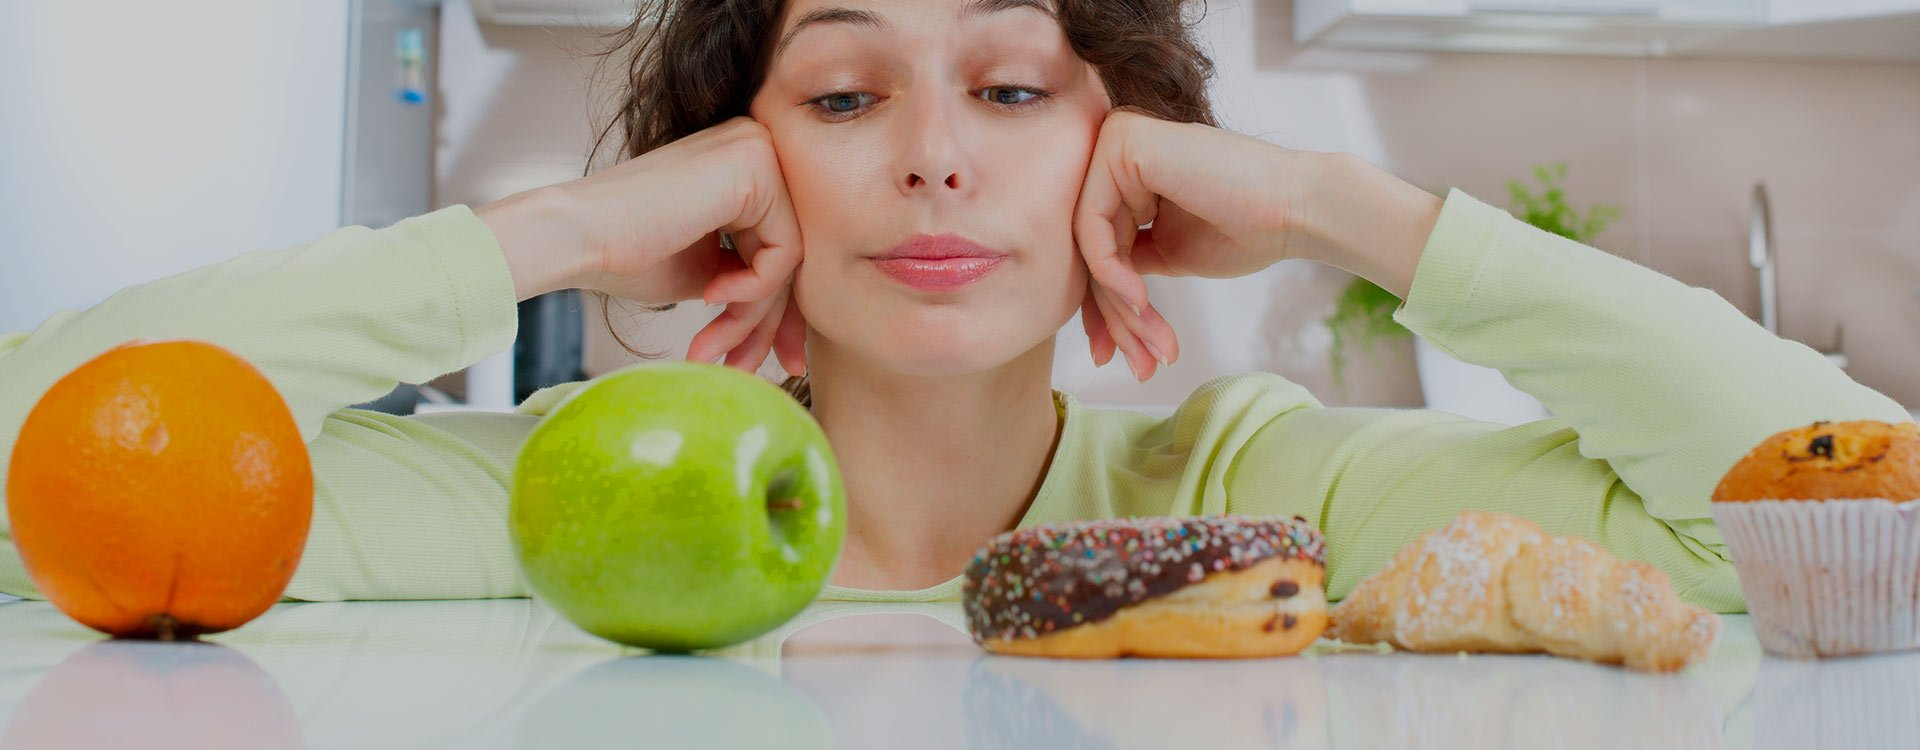 Misconceptions about diet and fitness